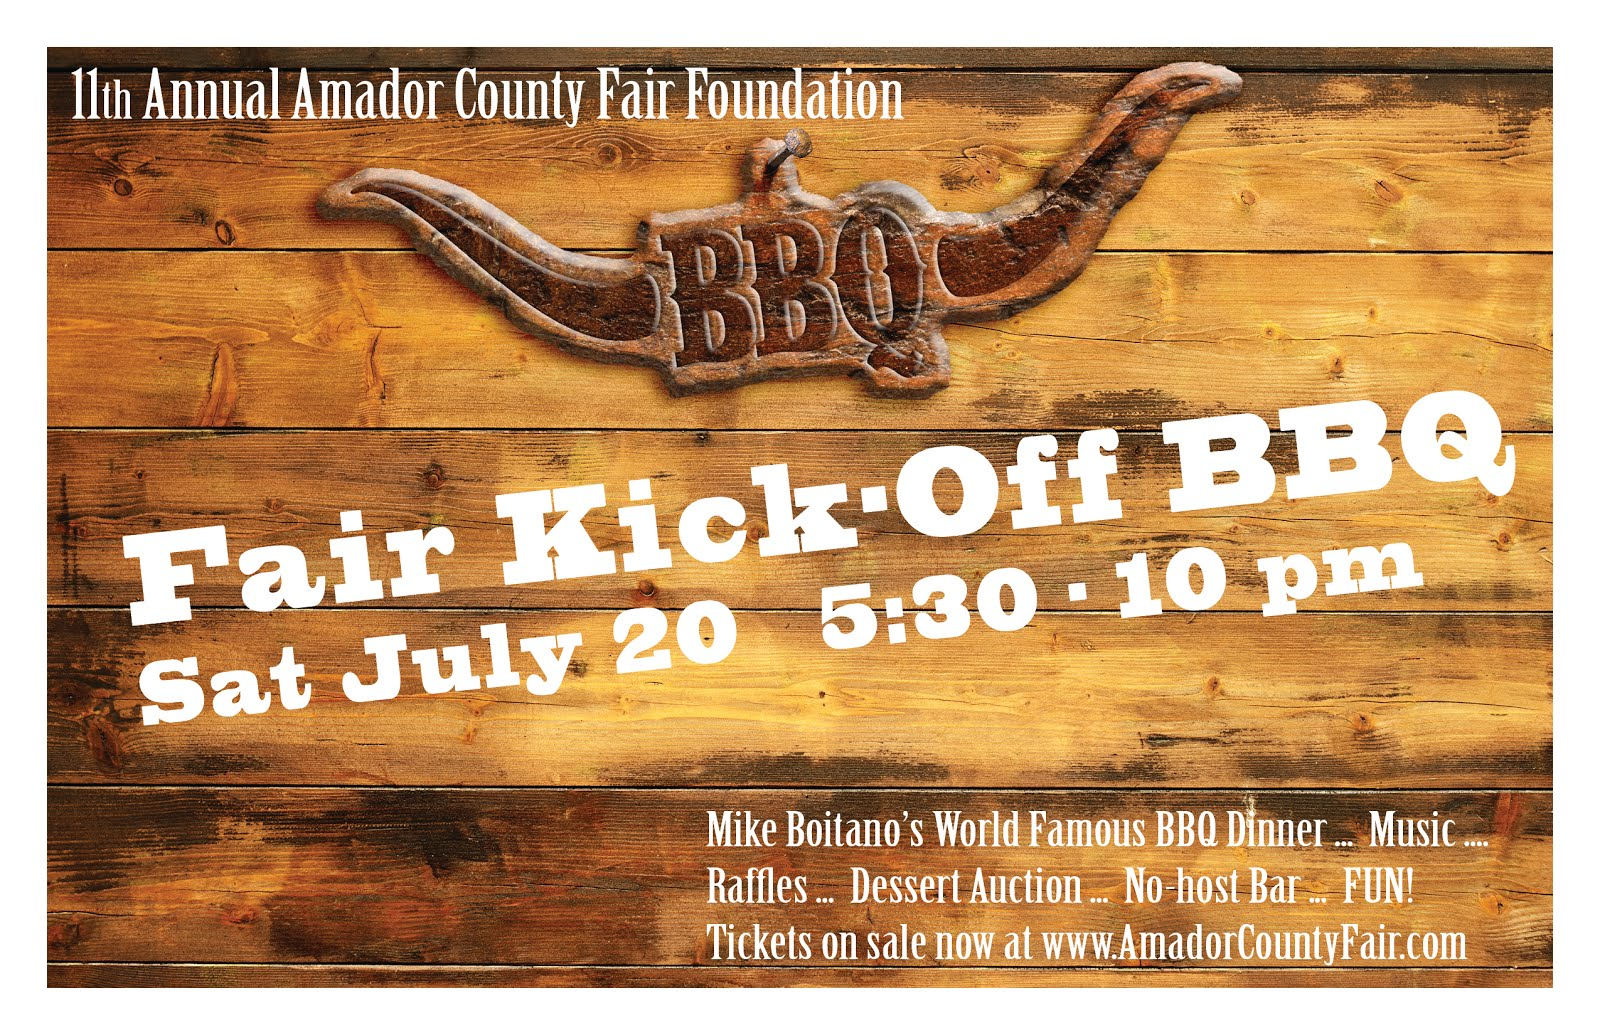 Amador County Fair Kick-Off BBQ - Sat July 20